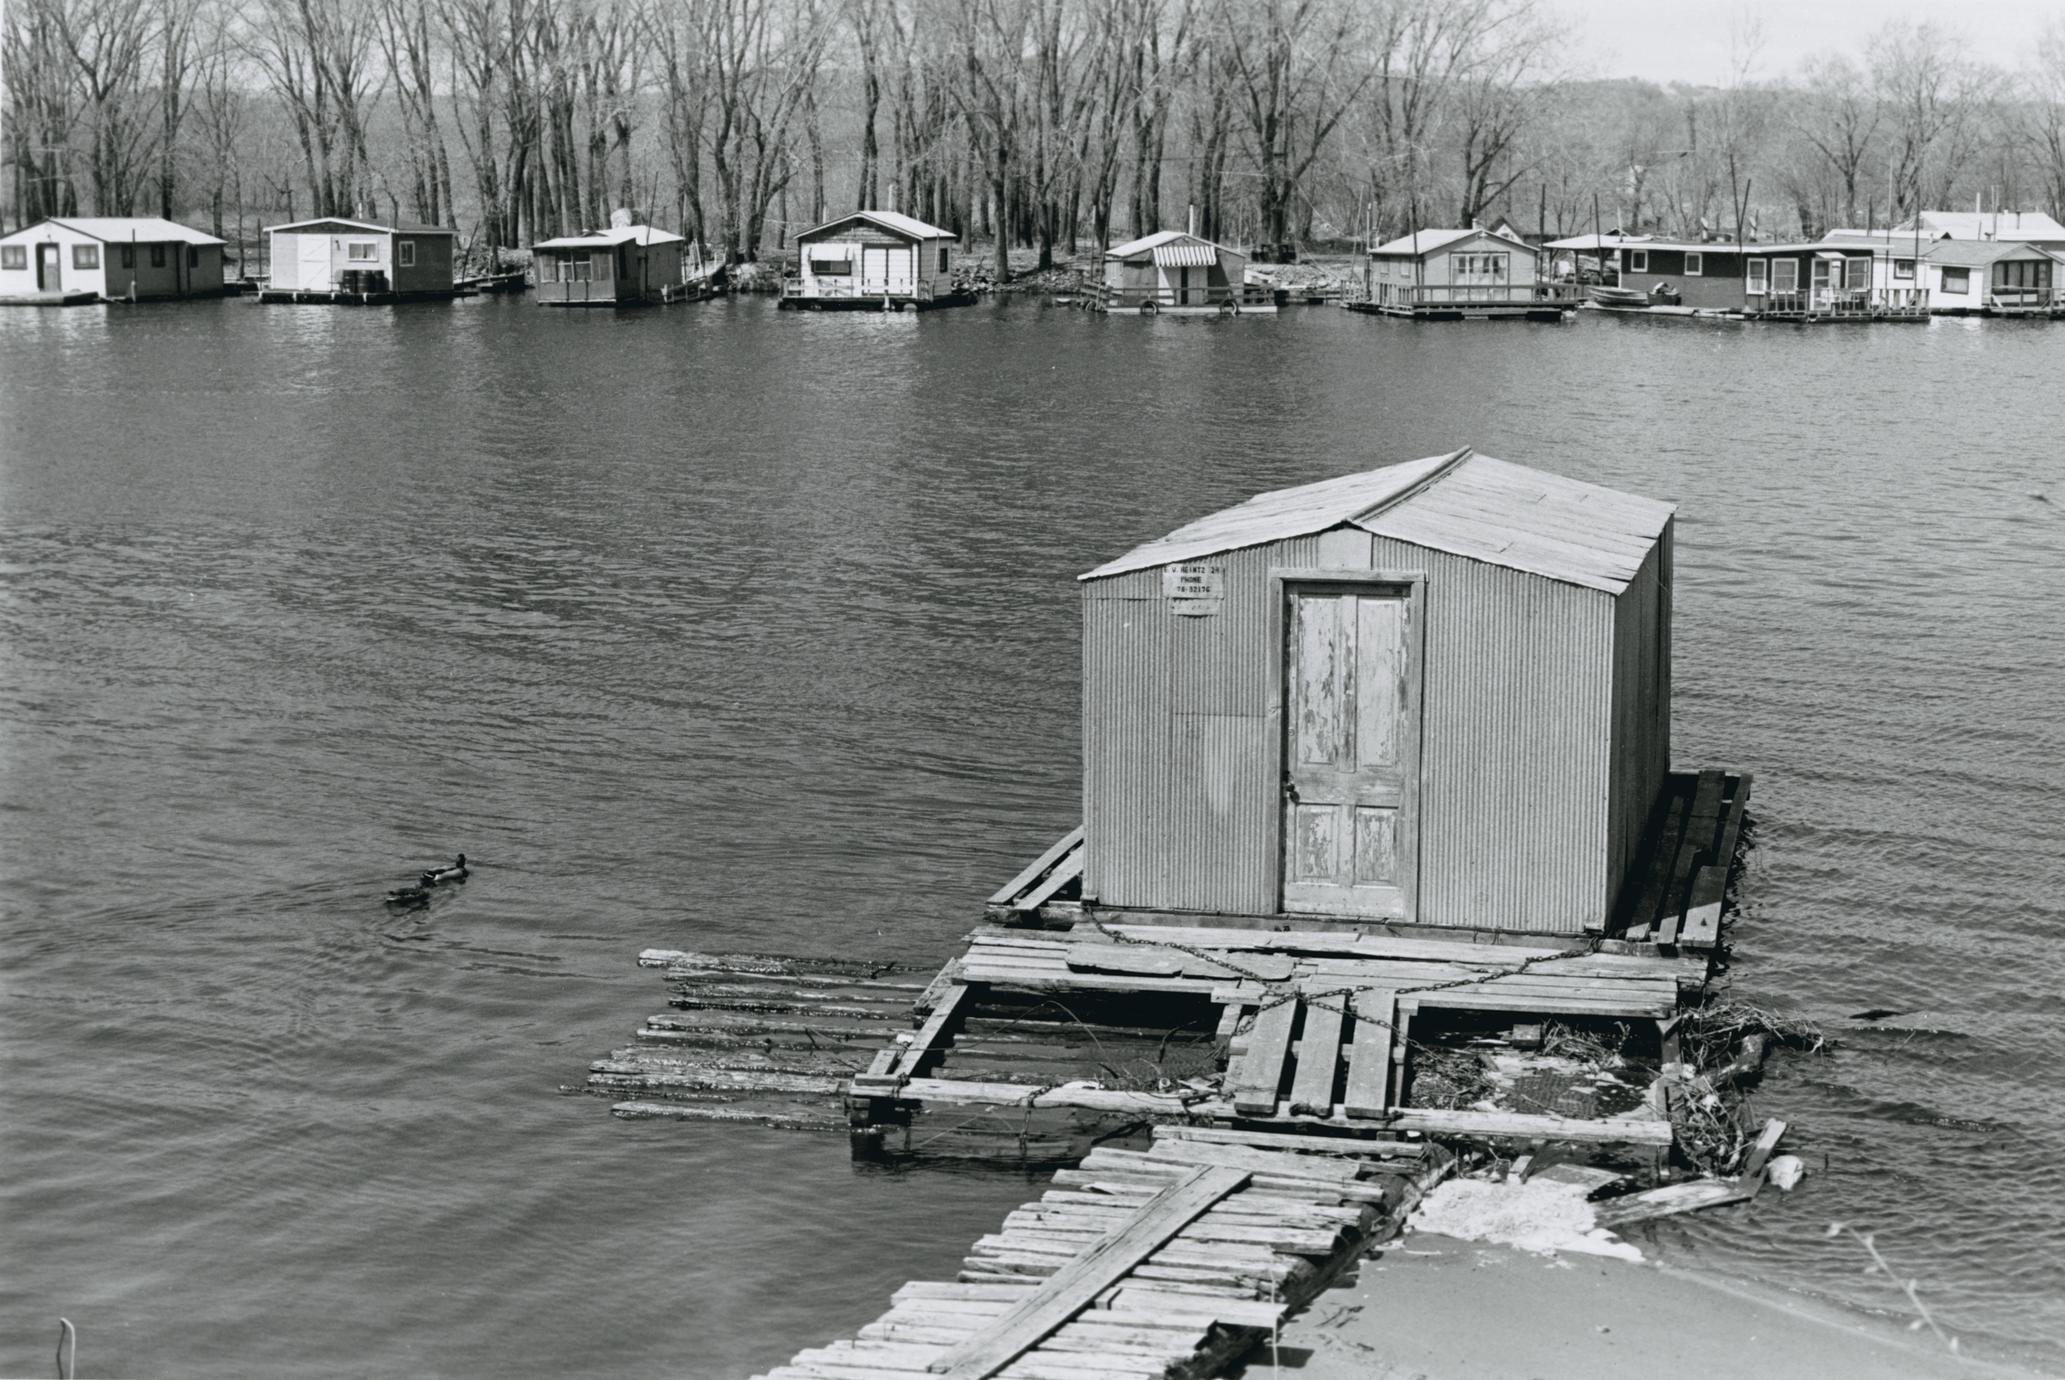 Boathouses, Unidentified